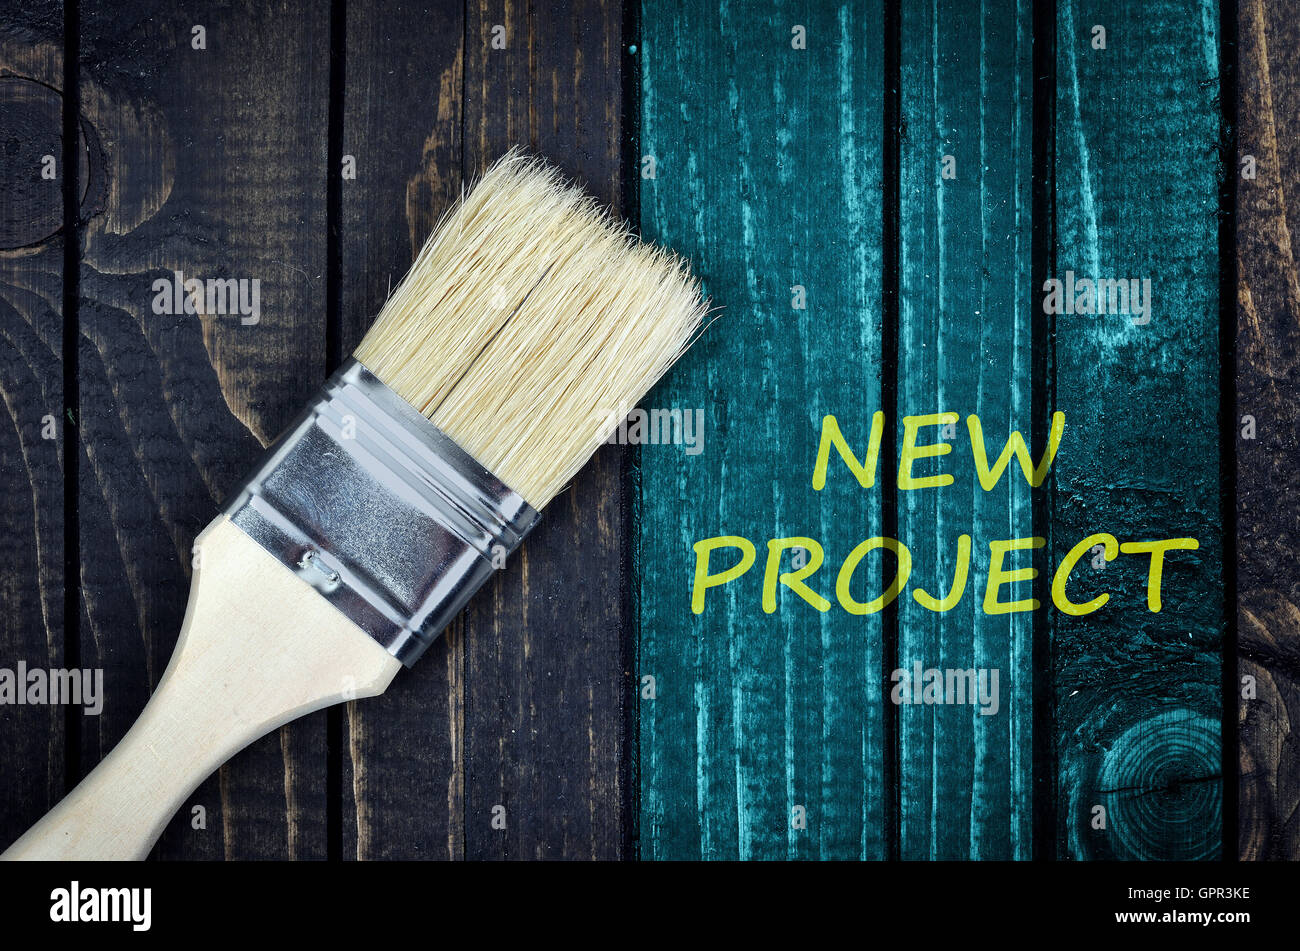 New Project message and paintbrush on wooden wall - Stock Image